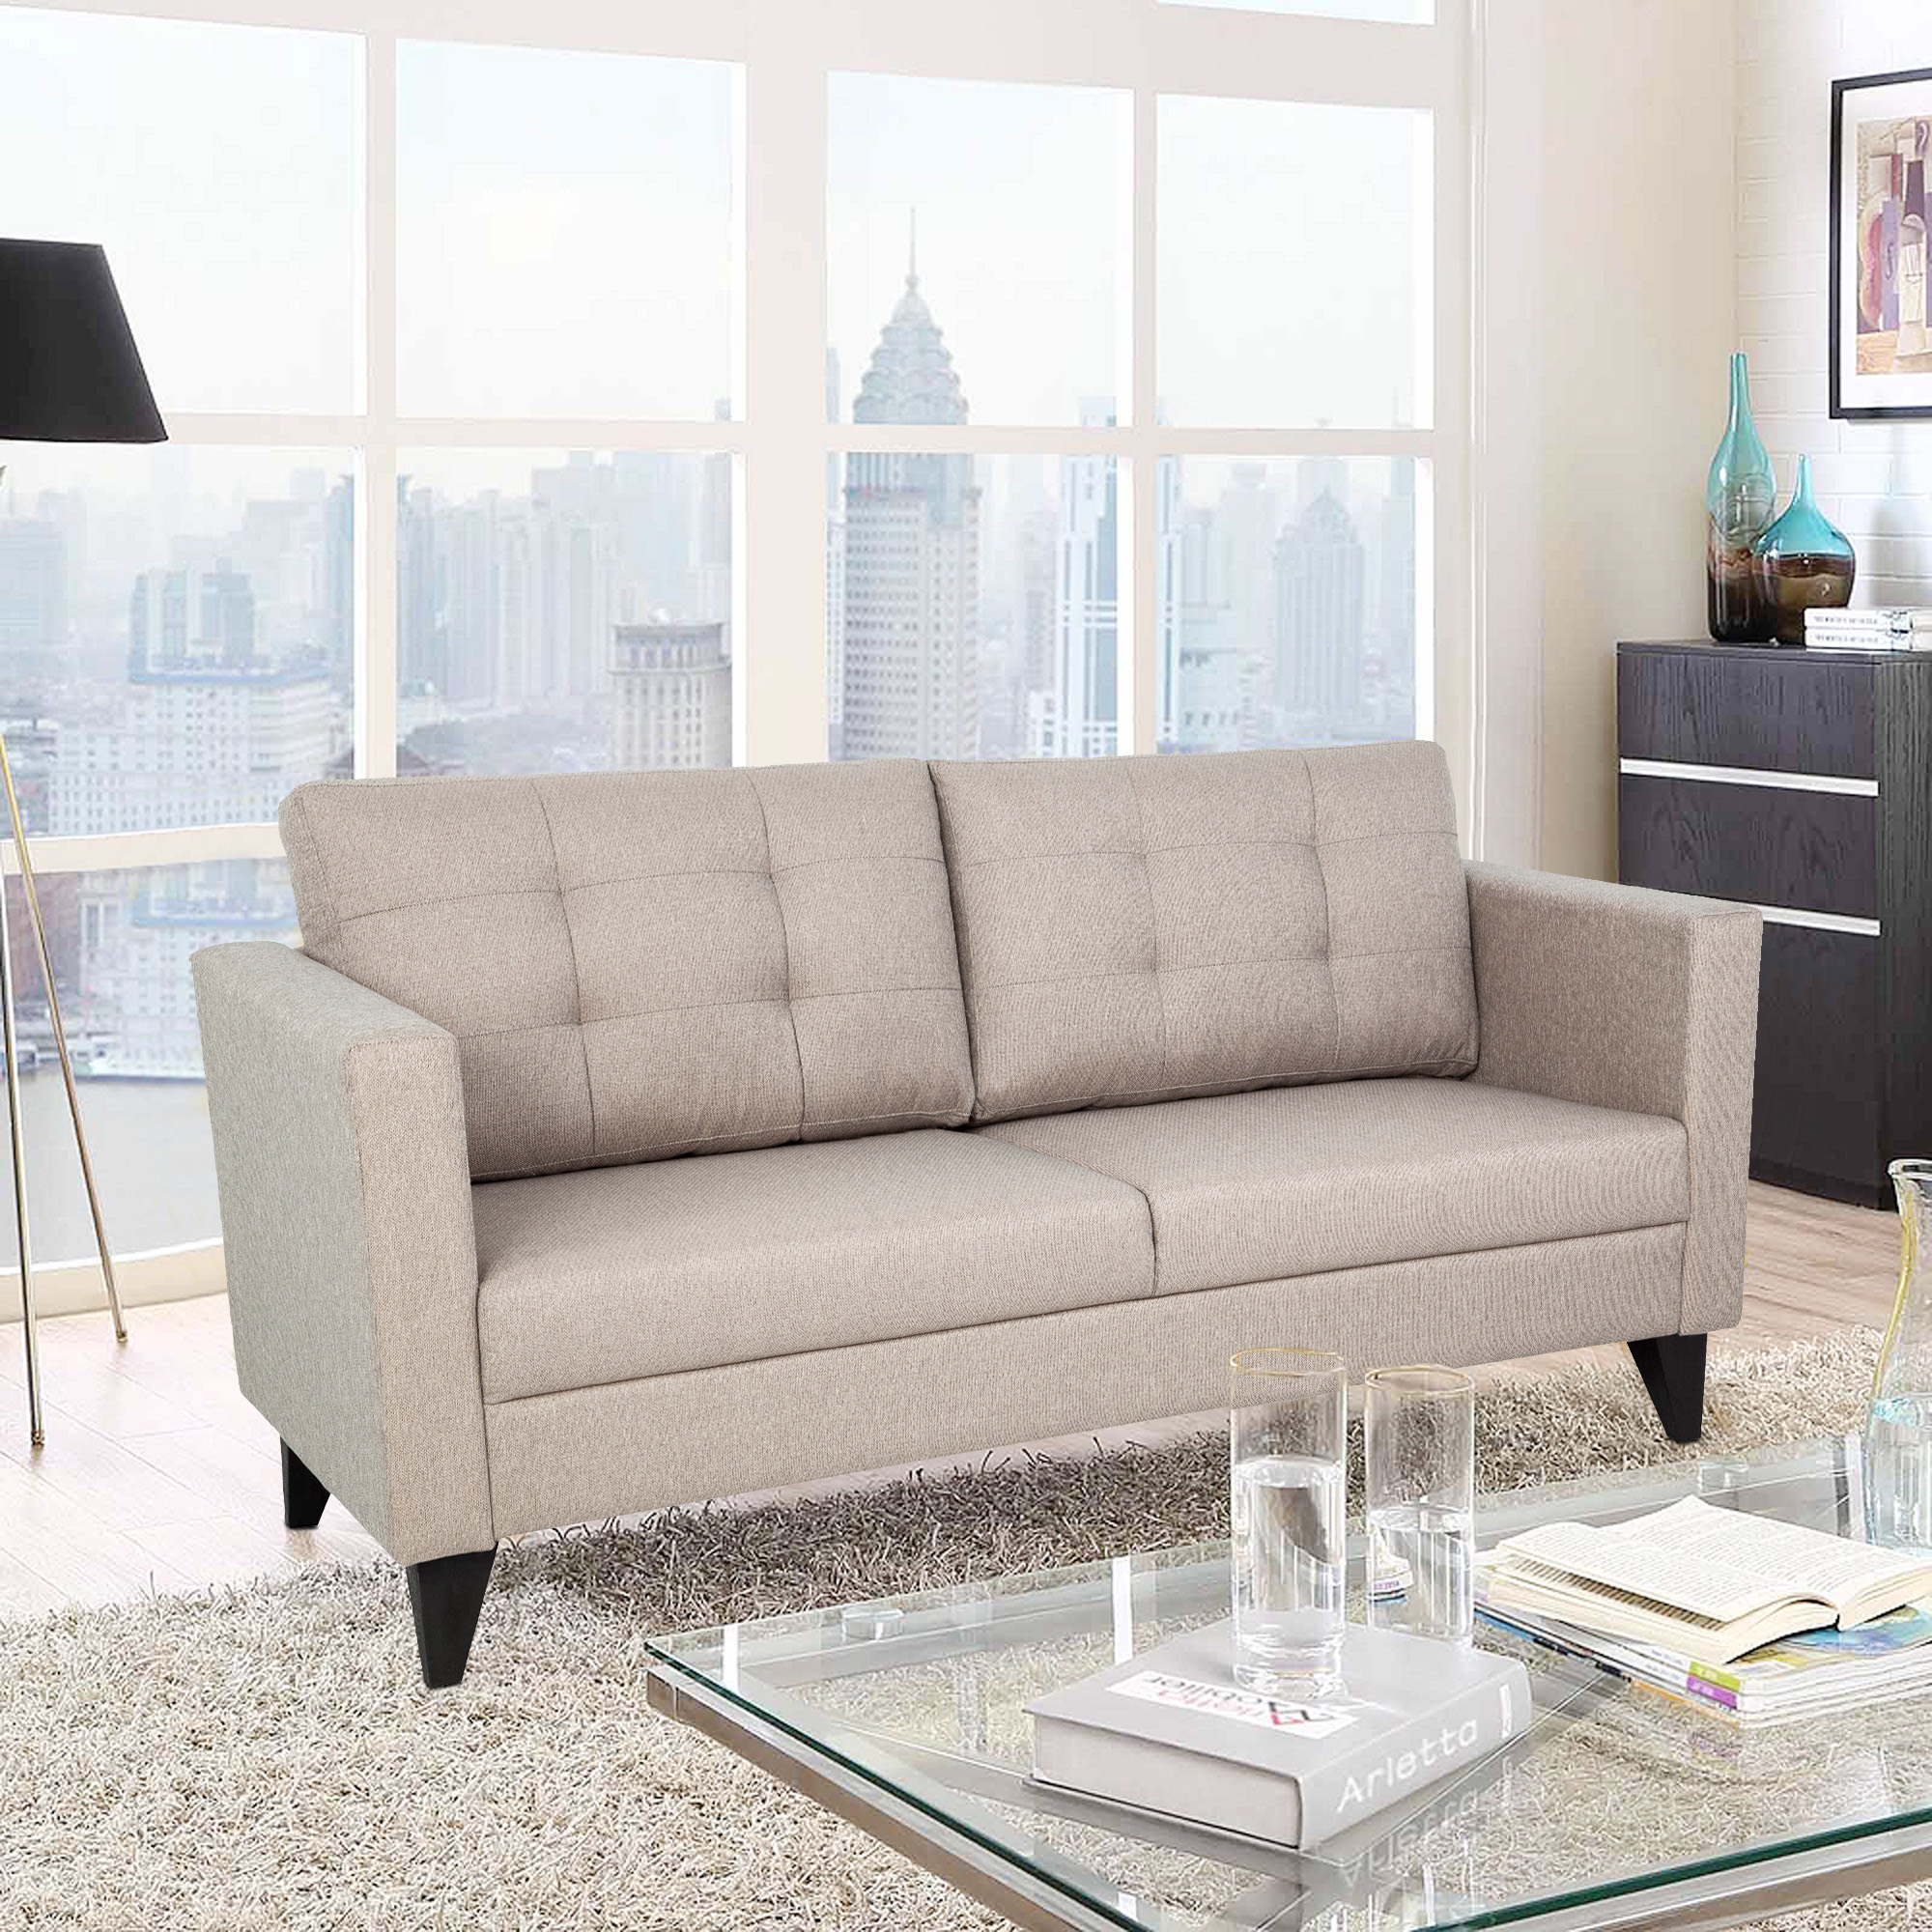 Castellar Fabric Three Seater sofa in Camel Colour by HomeTown